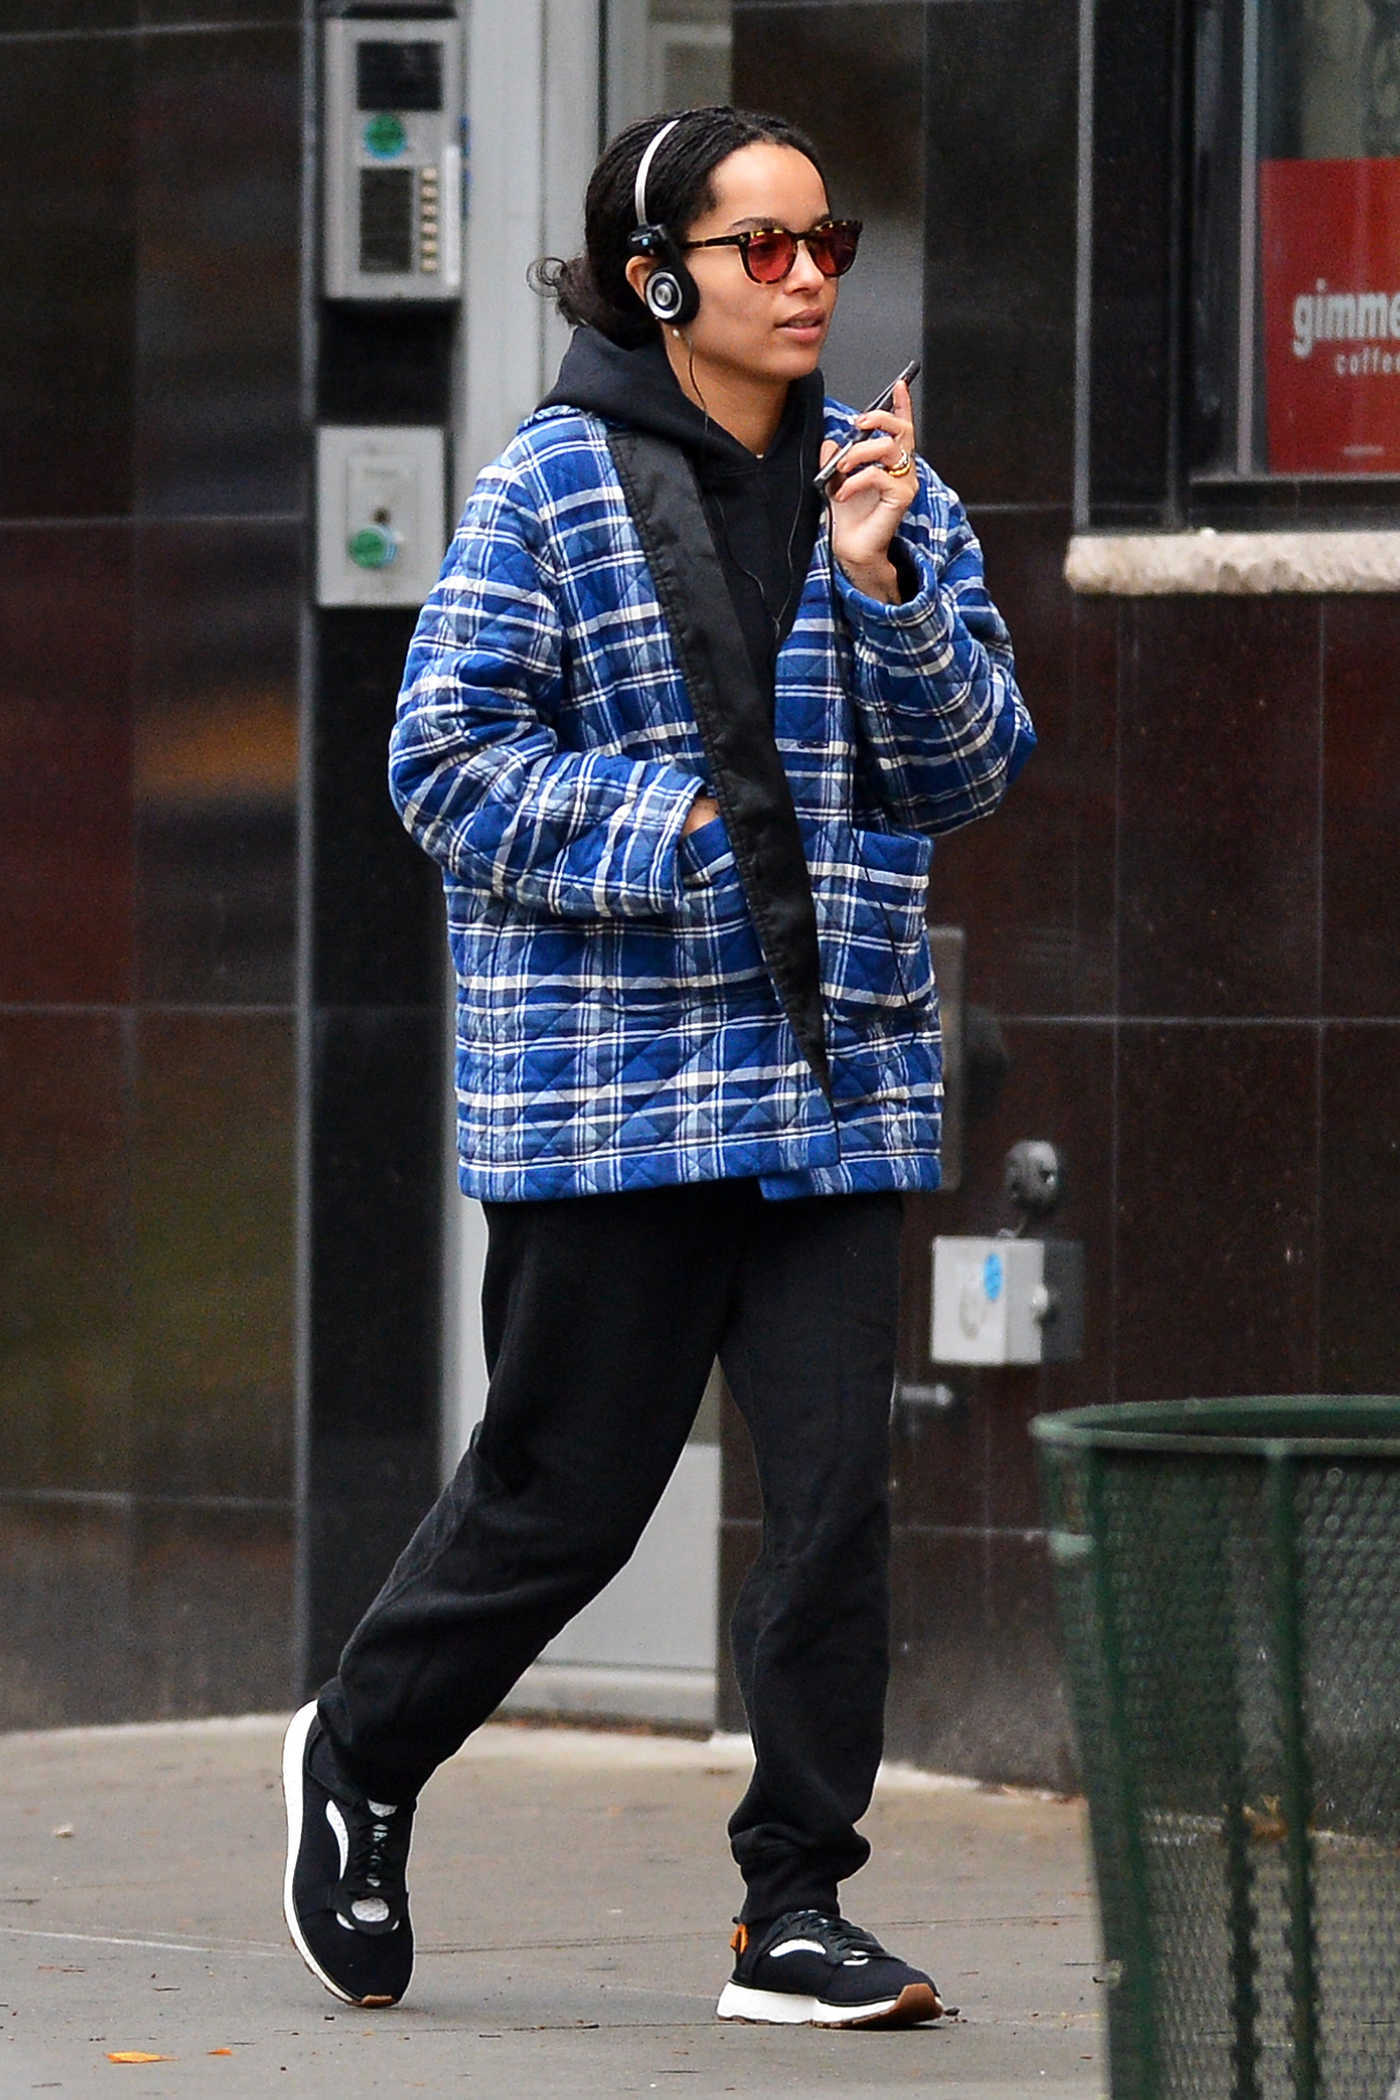 Zoe Kravitz in a Blue Plaid Jacket Was Seen Out in NYC 11/05/2018